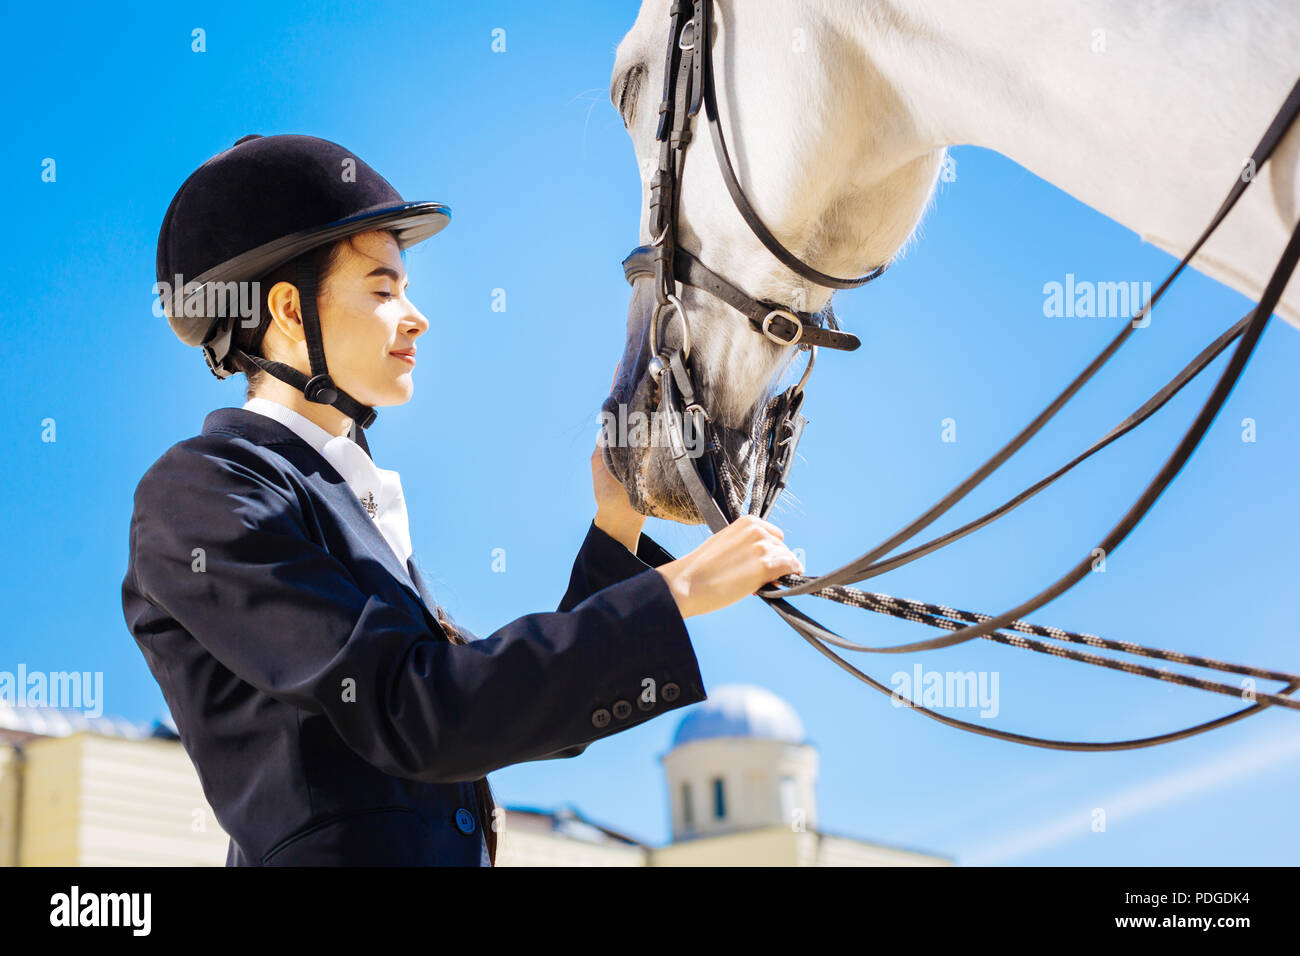 Caring loving horsewoman calming her white horse - Stock Image